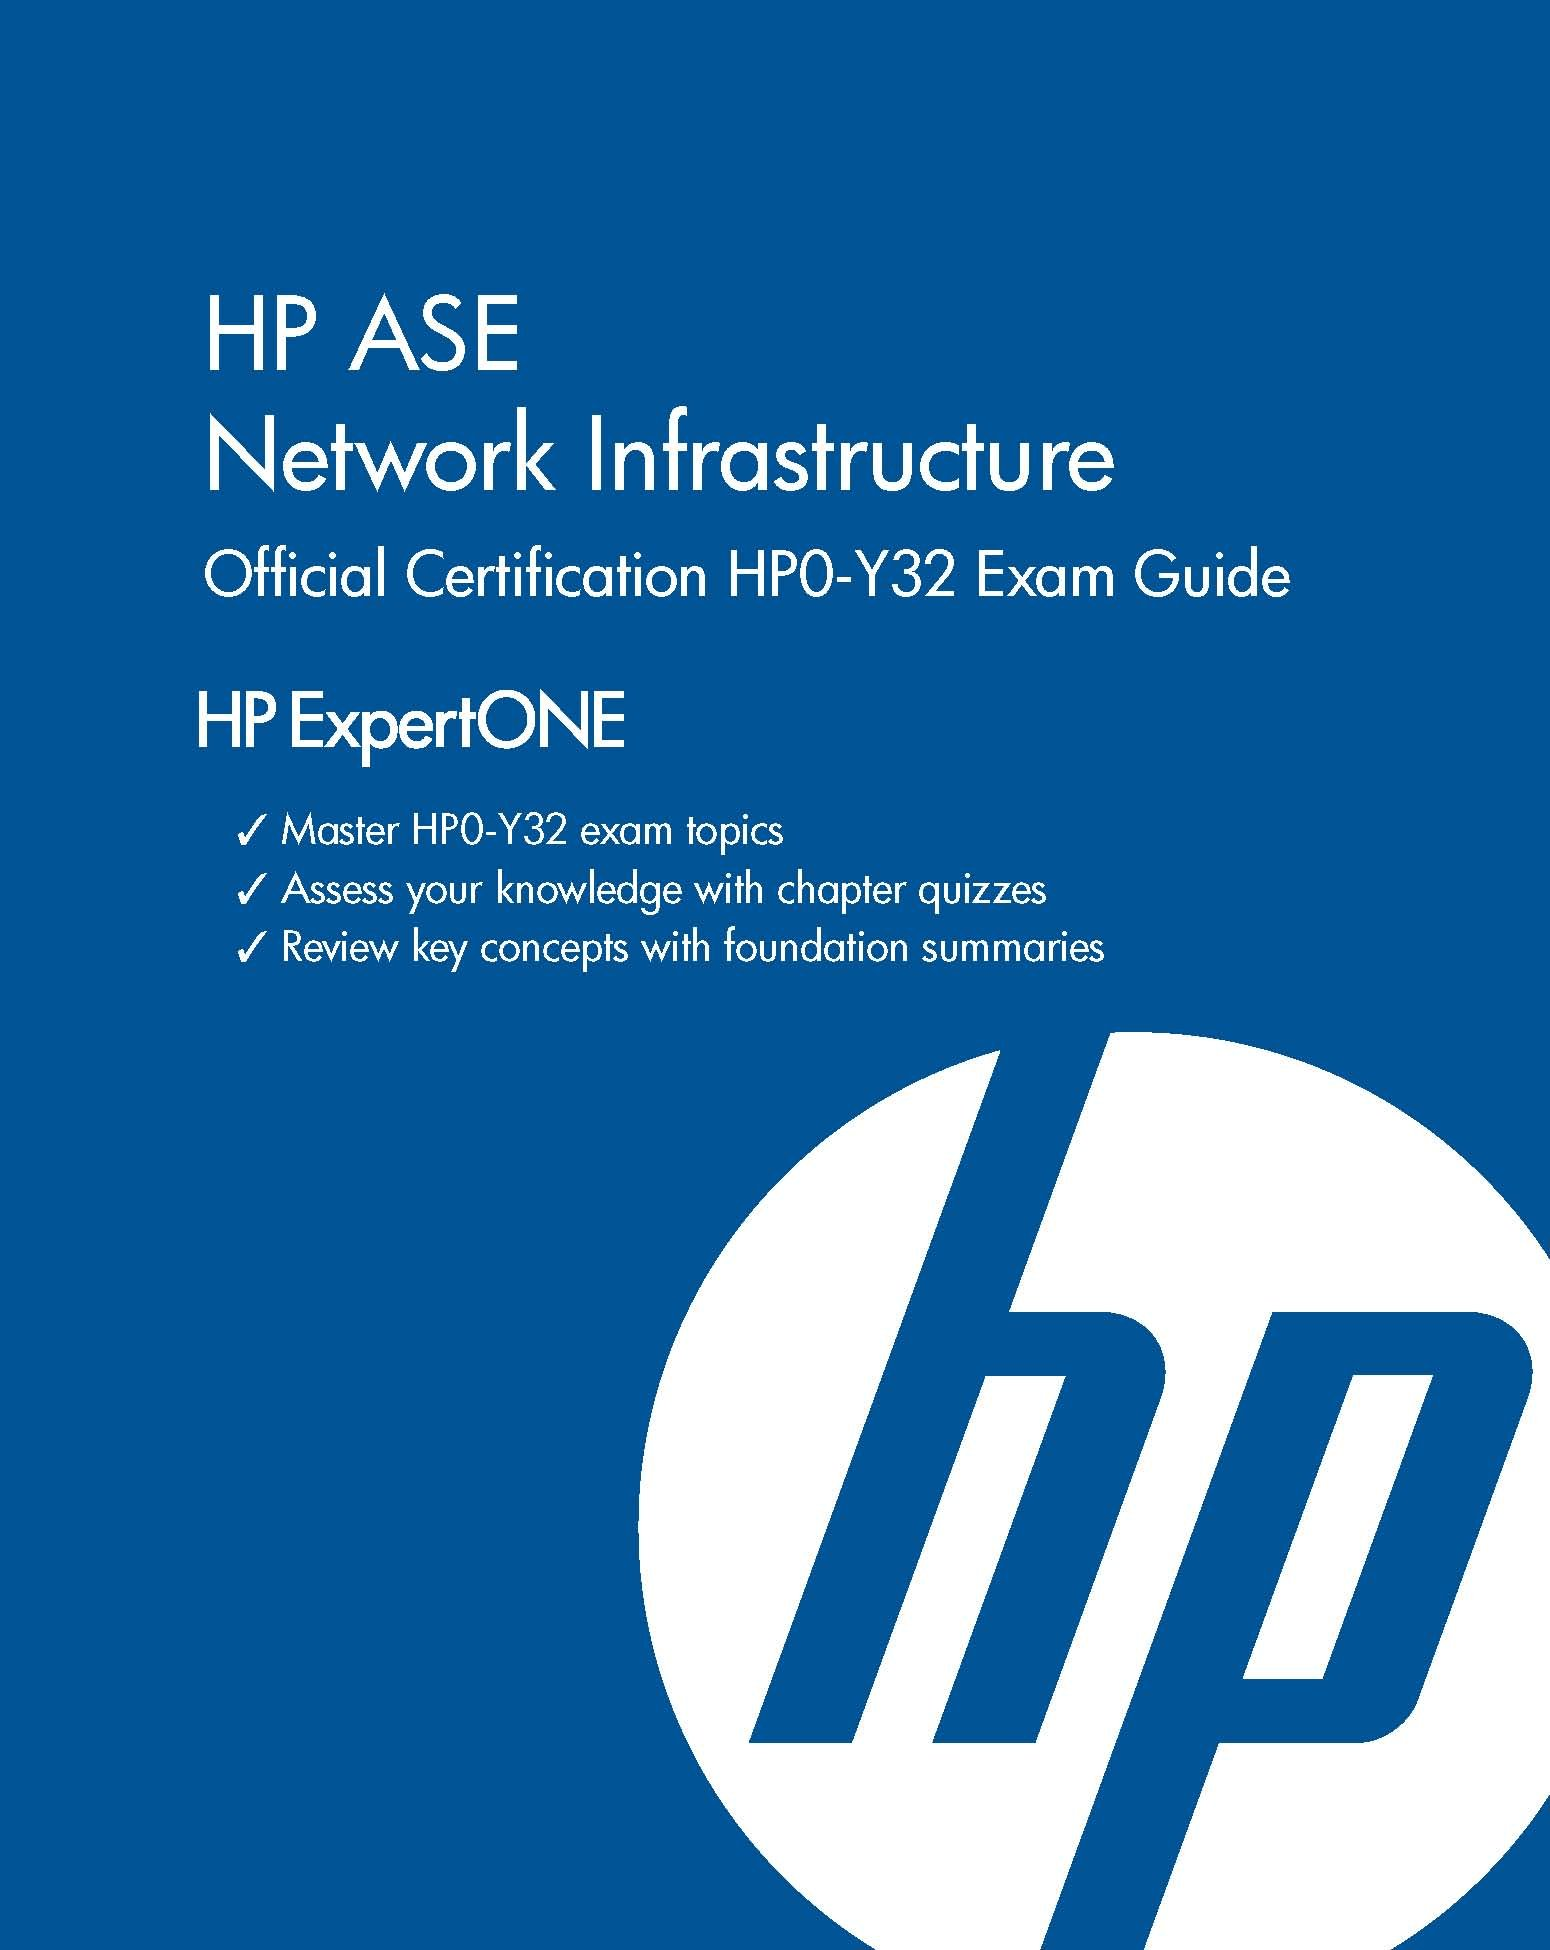 Hp Ase Network Infrastructure Official Certification Hp0 Y32 Exam